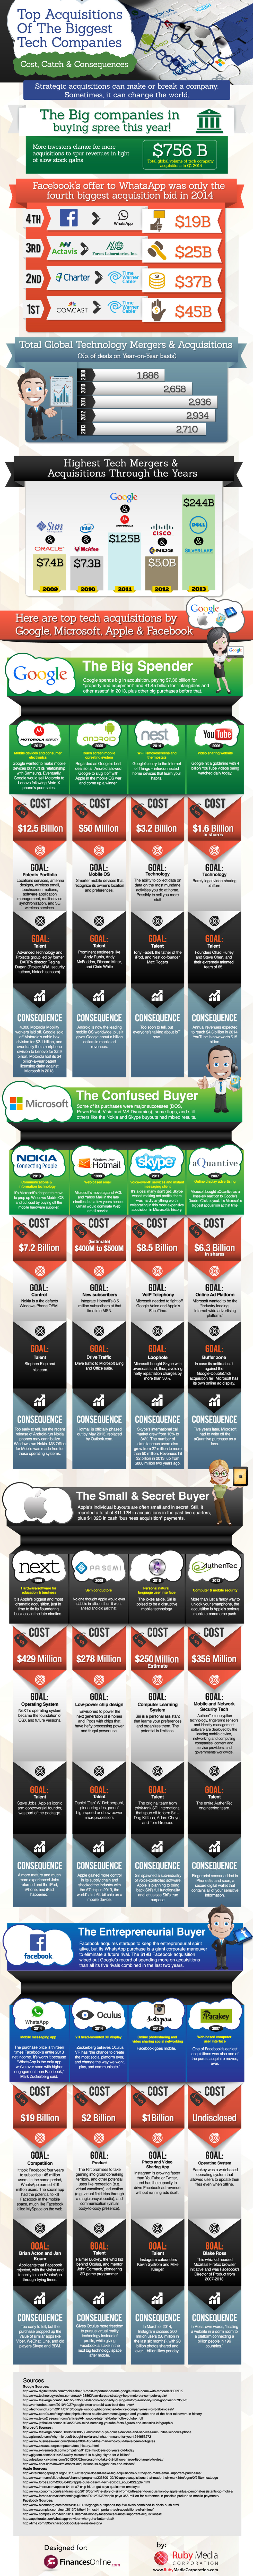 Infographic: Tech Acquisitions in Q1 Totalled $756bn